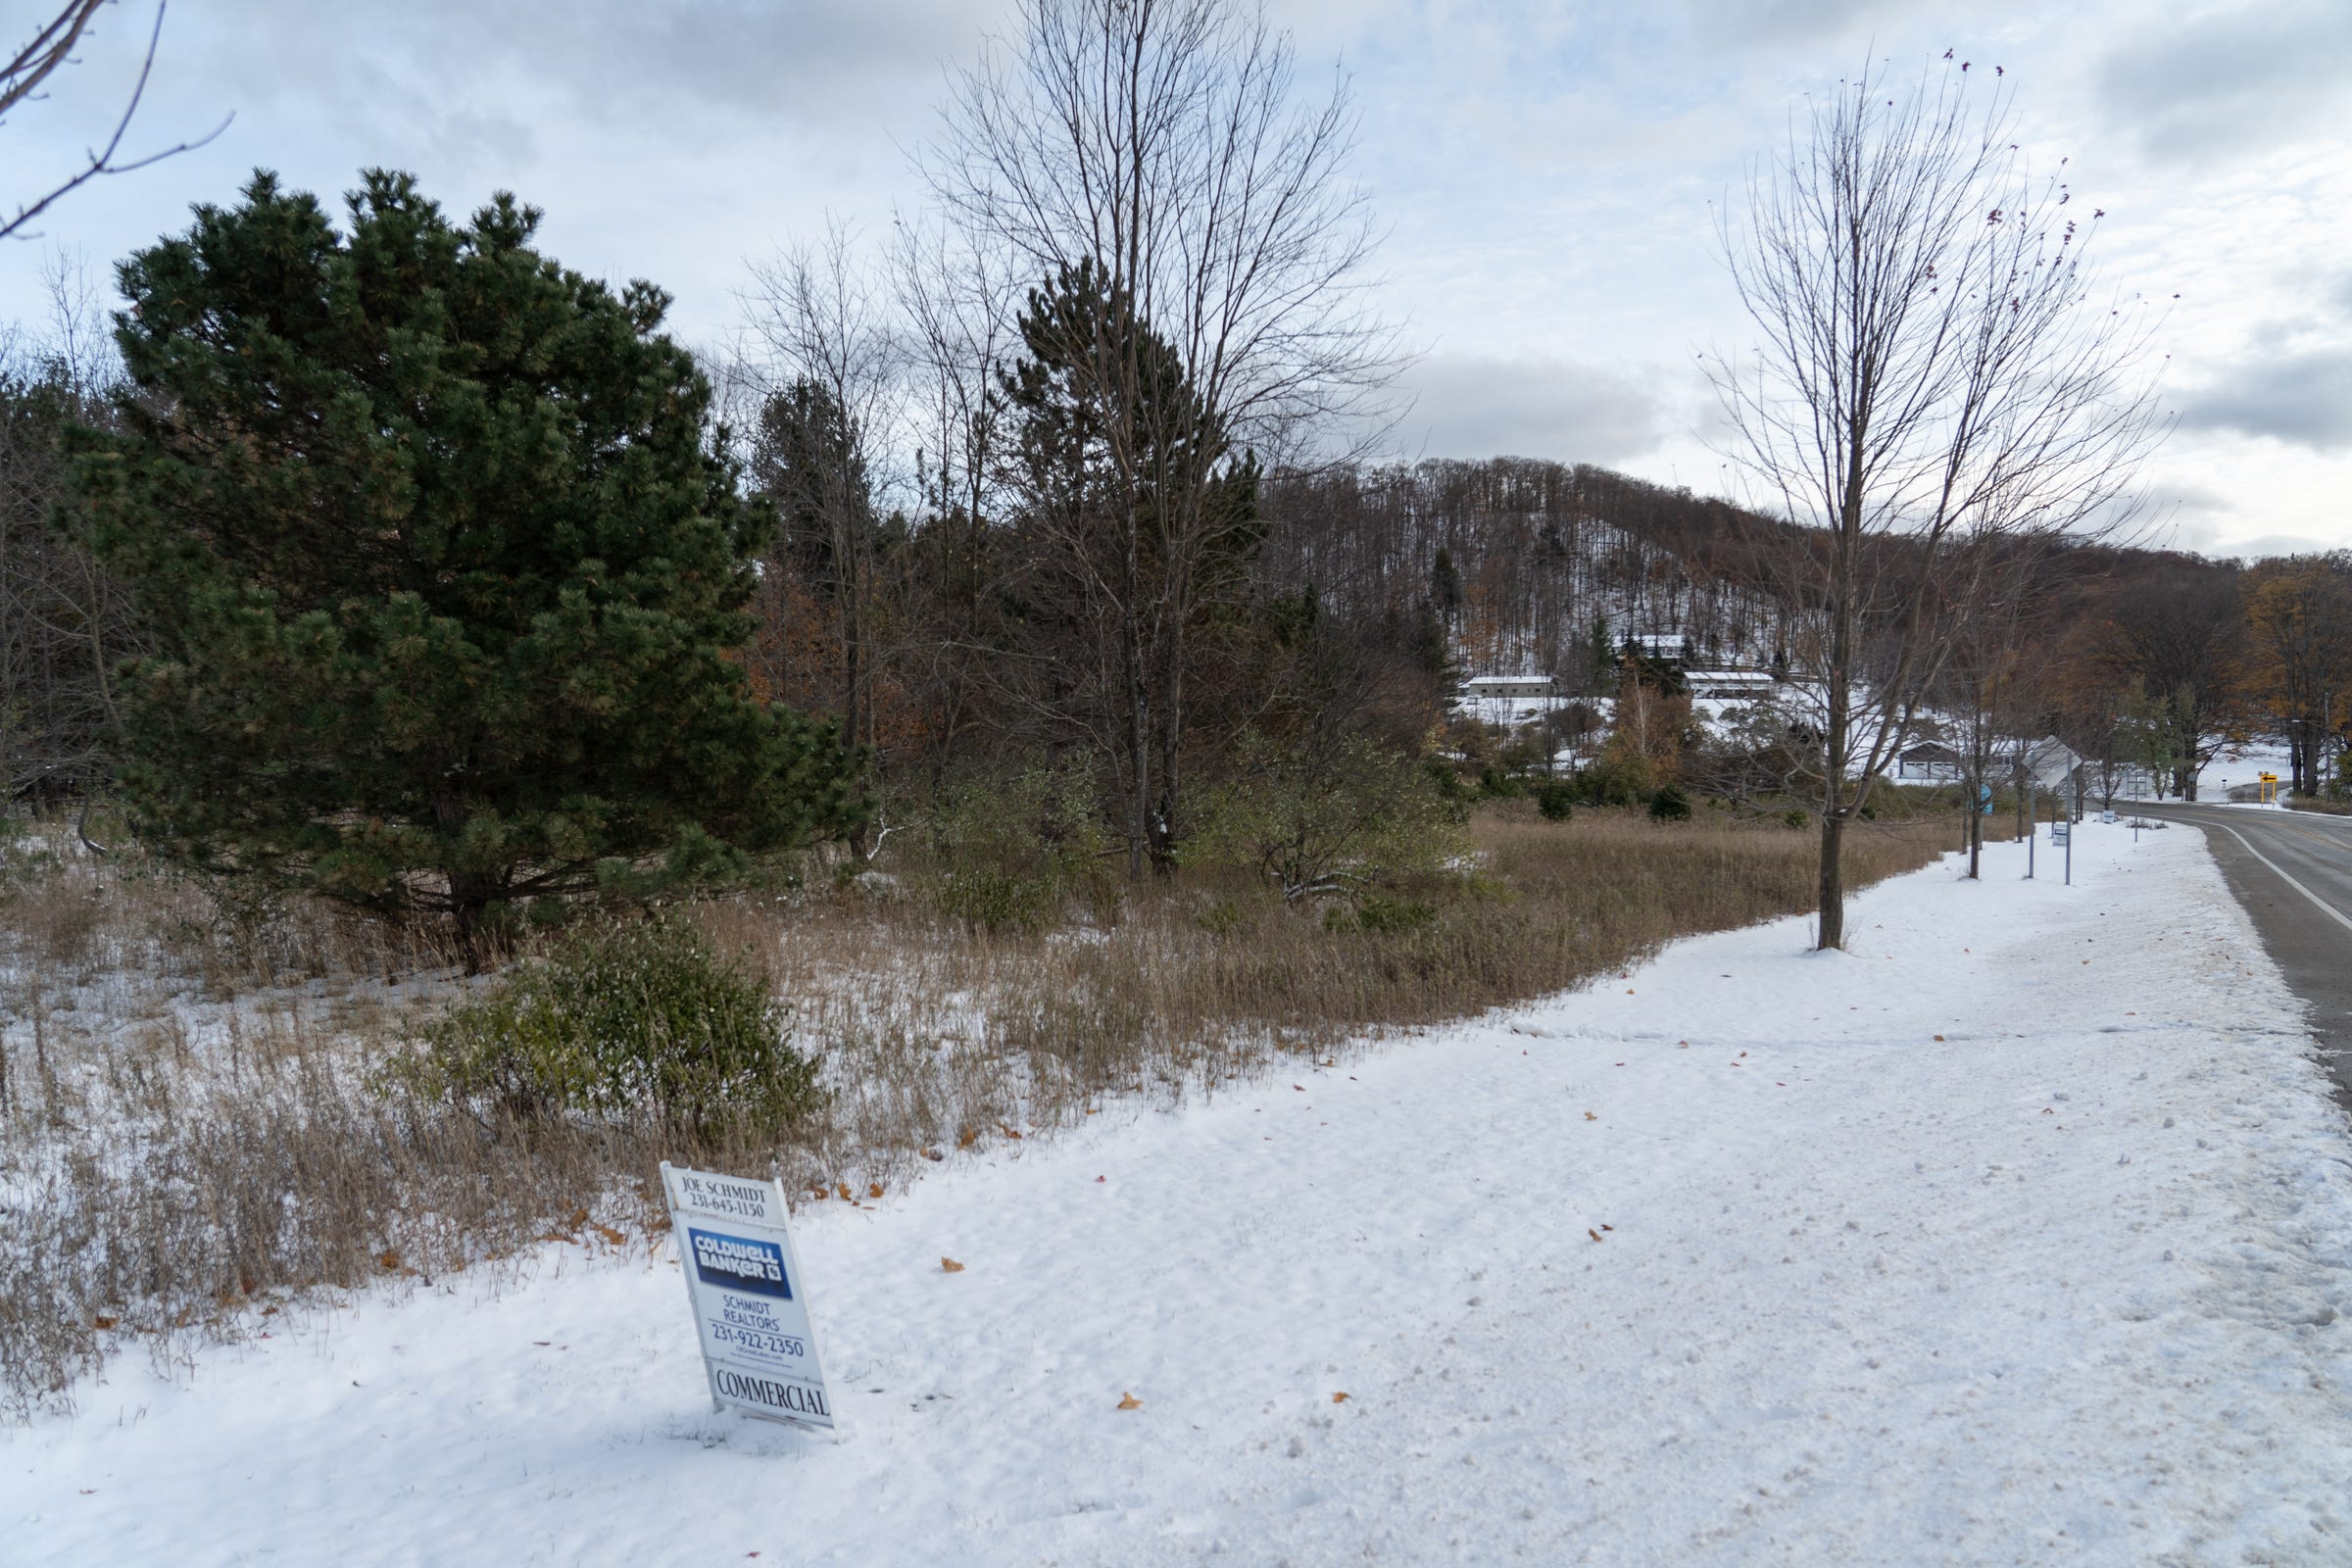 A plot of land for sale along M-22 near downtown Empire, seen here on Nov. 8. 2019, drew offers from a company known to sell property to dollar stores, leading to a moratorium on zoning applications in the little village.